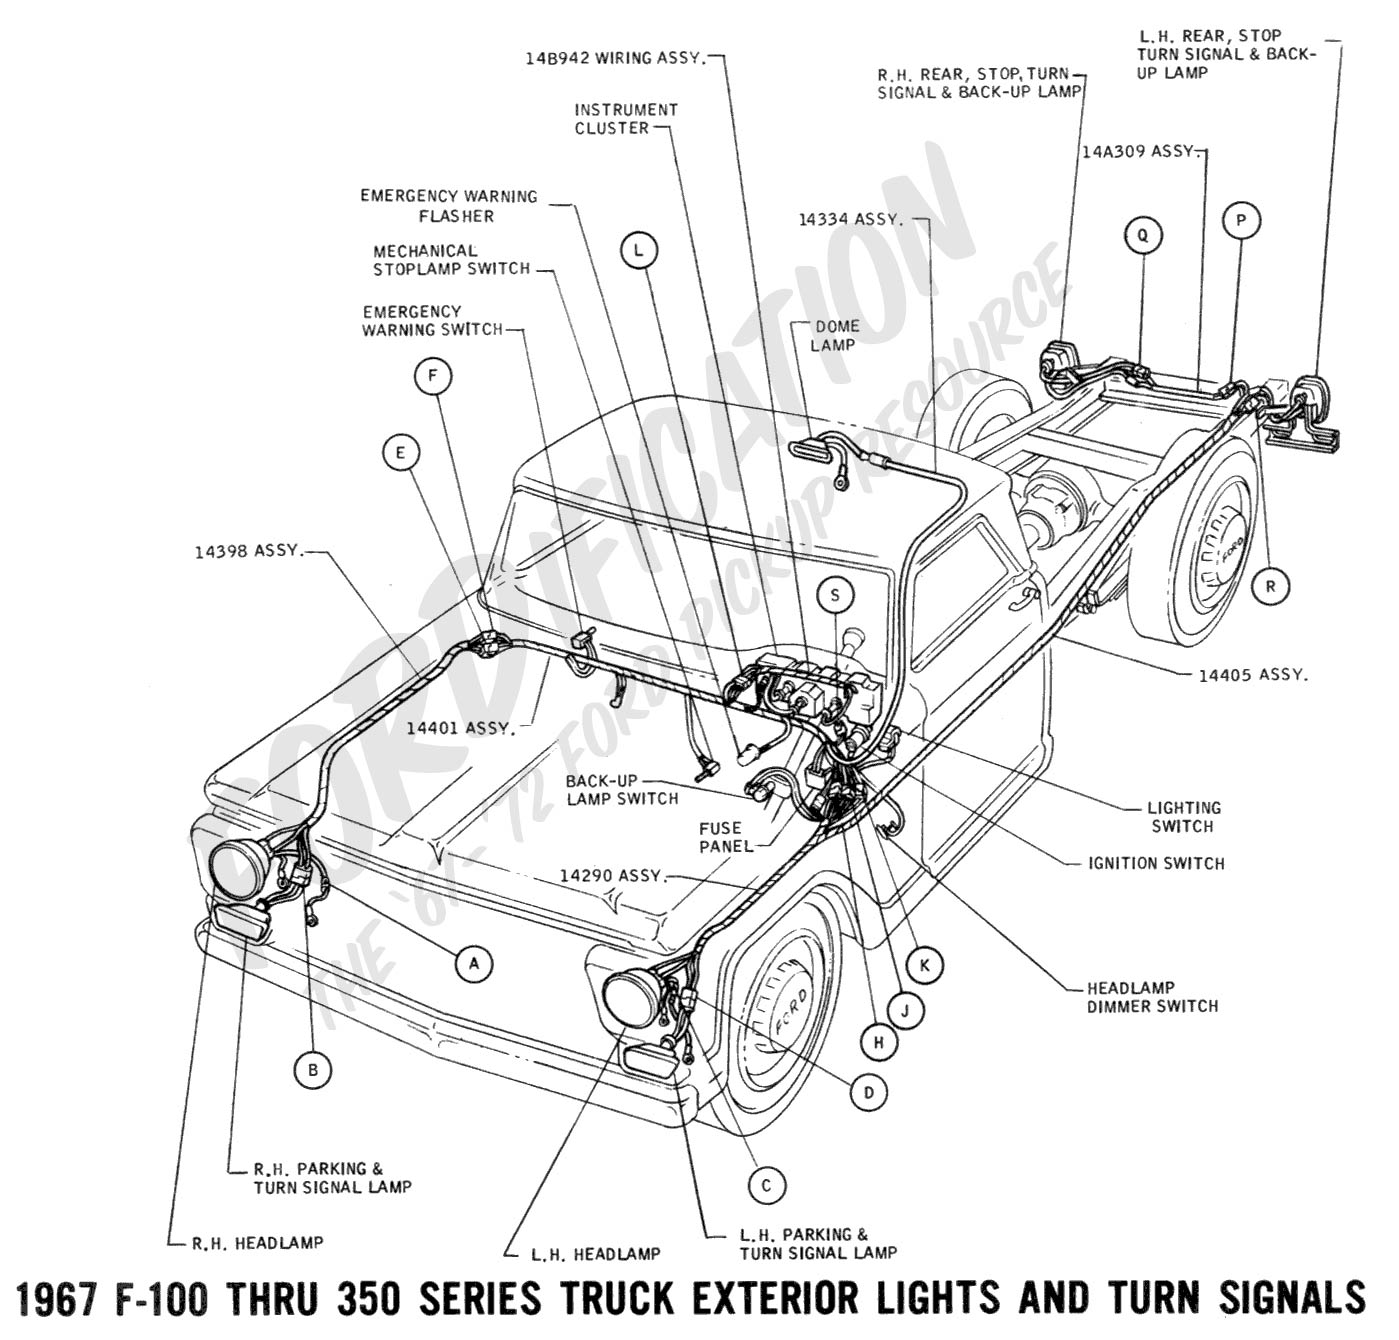 85 f150 heater wiring diagram wiring harness diagram for 1985 f150 wiring discover your wiring wiring diagrams 1990 toyota pickup wiring